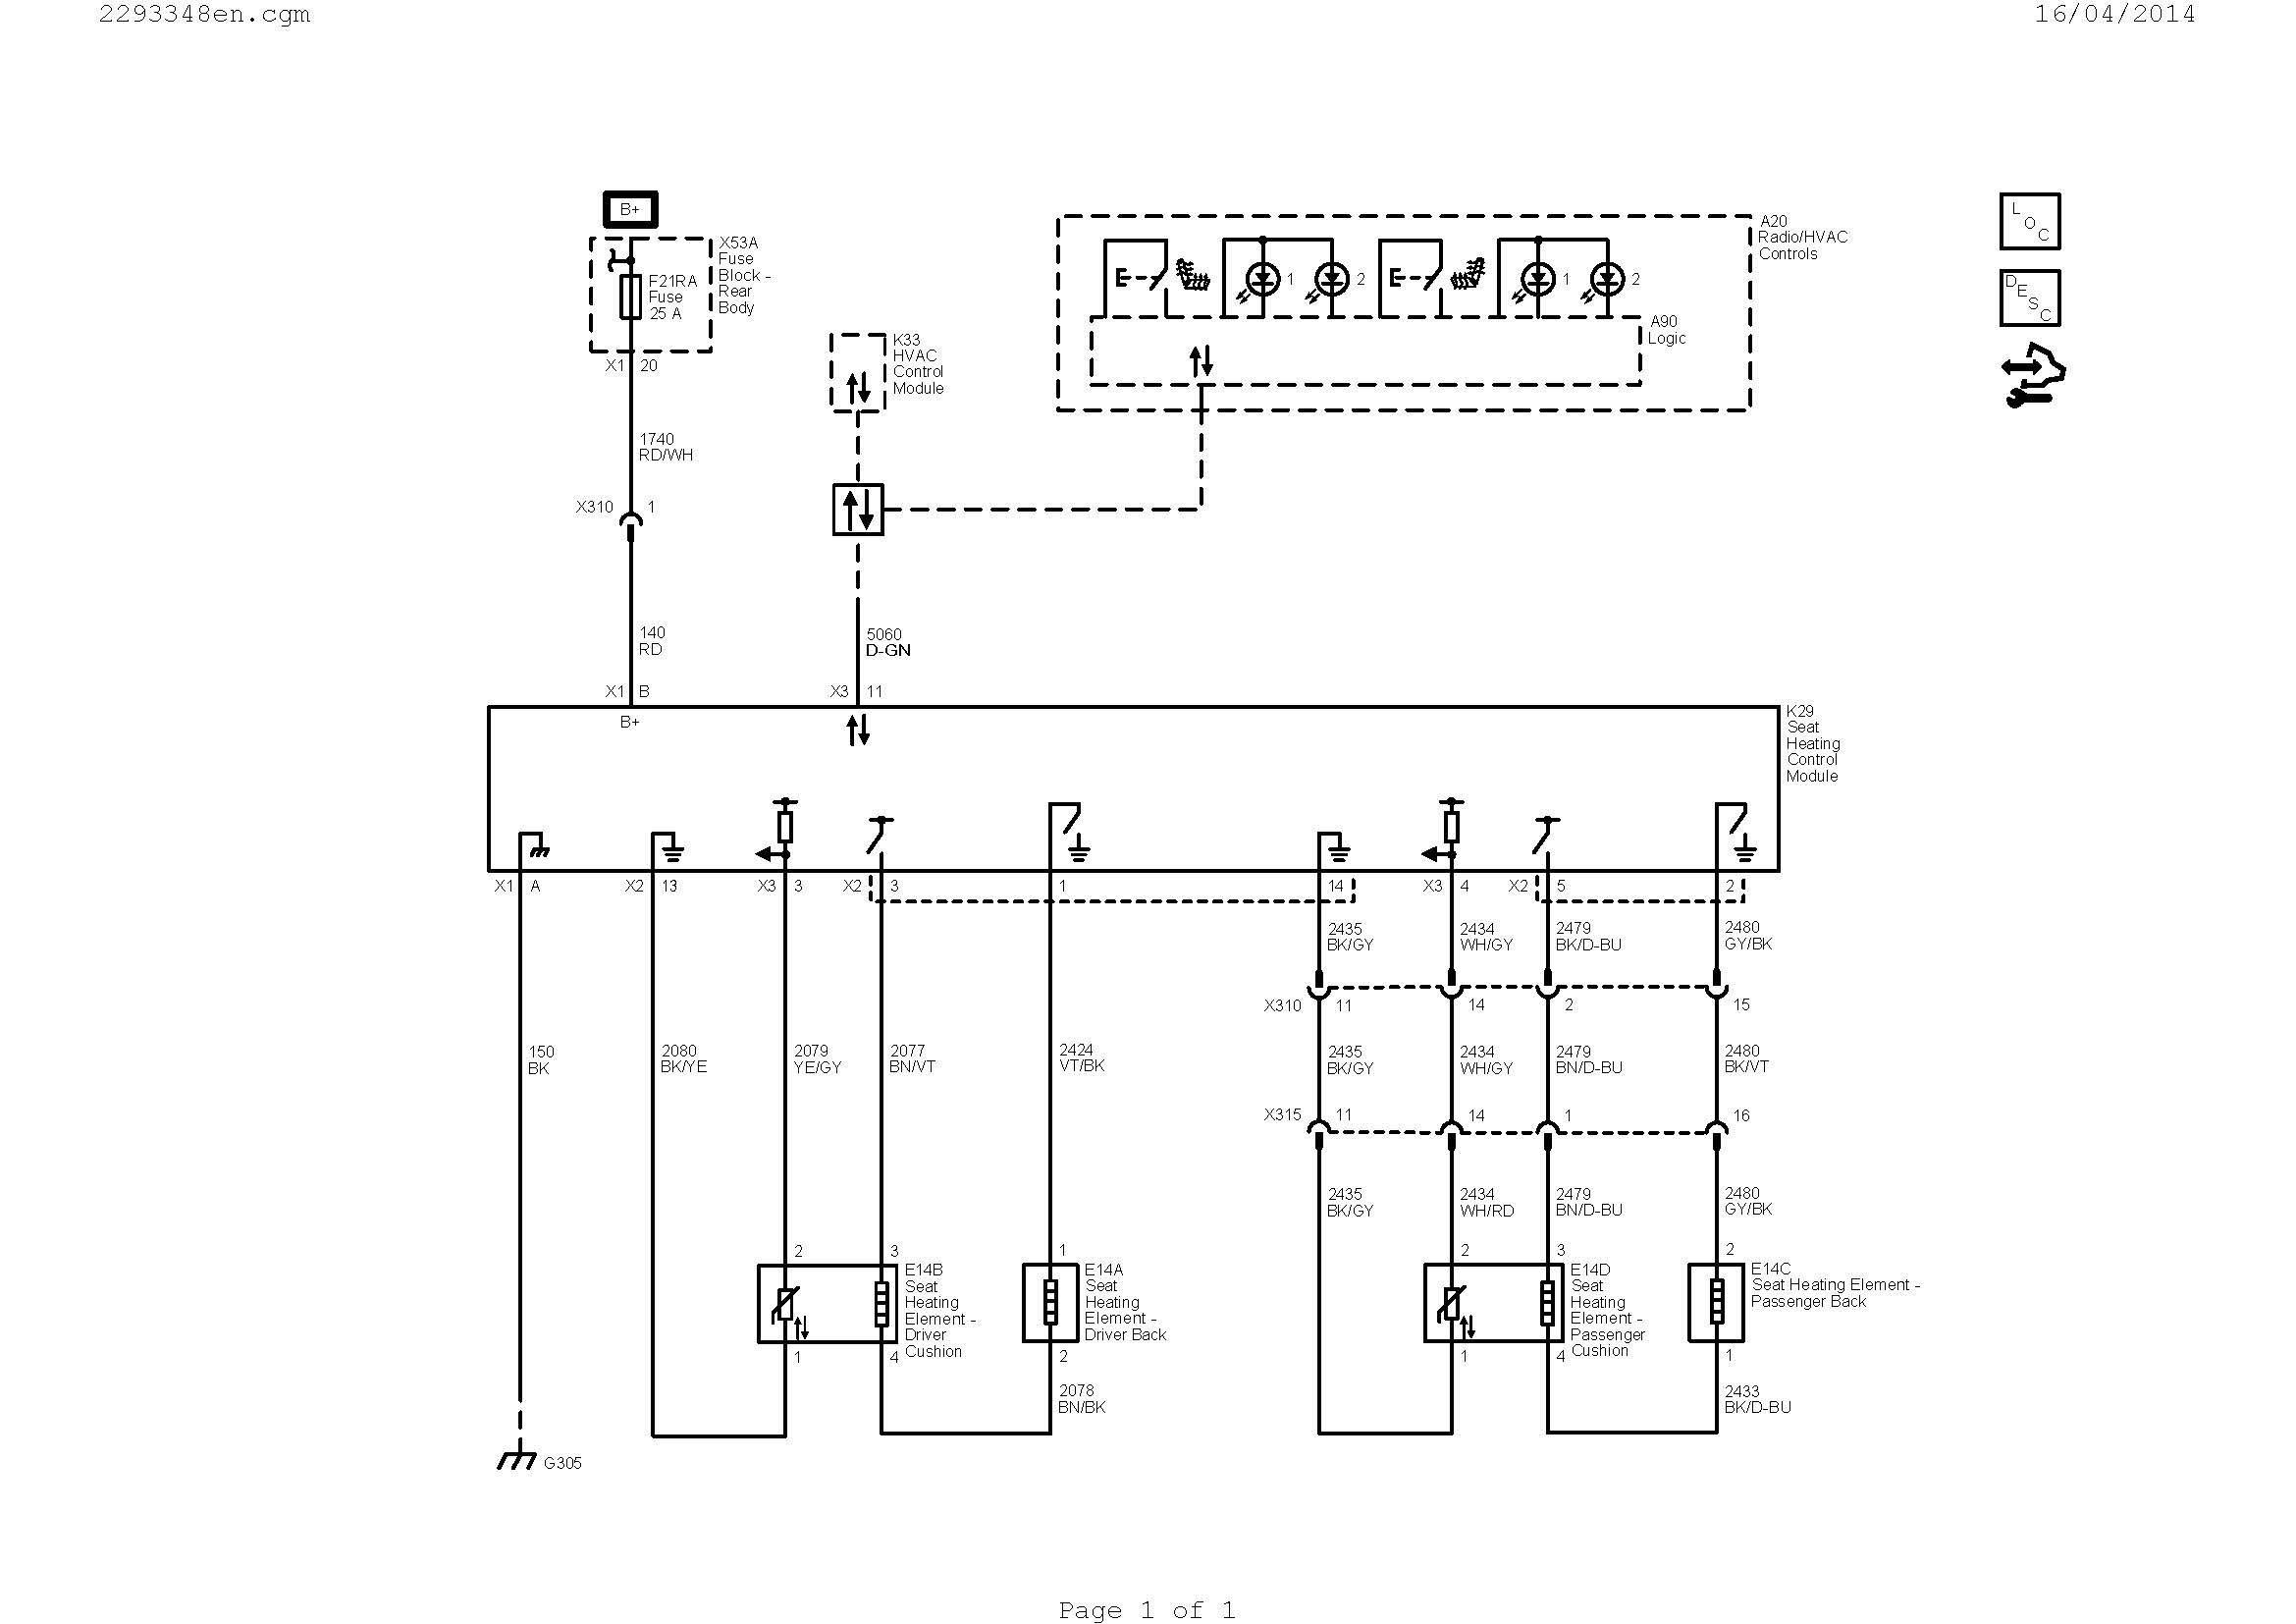 electric furnace thermostat wiring diagram free picture wiring diagramlennox schematic diagram wiring diagram progresiflennox furnace thermostat wiring diagram free wiring diagram electric furnace schematic